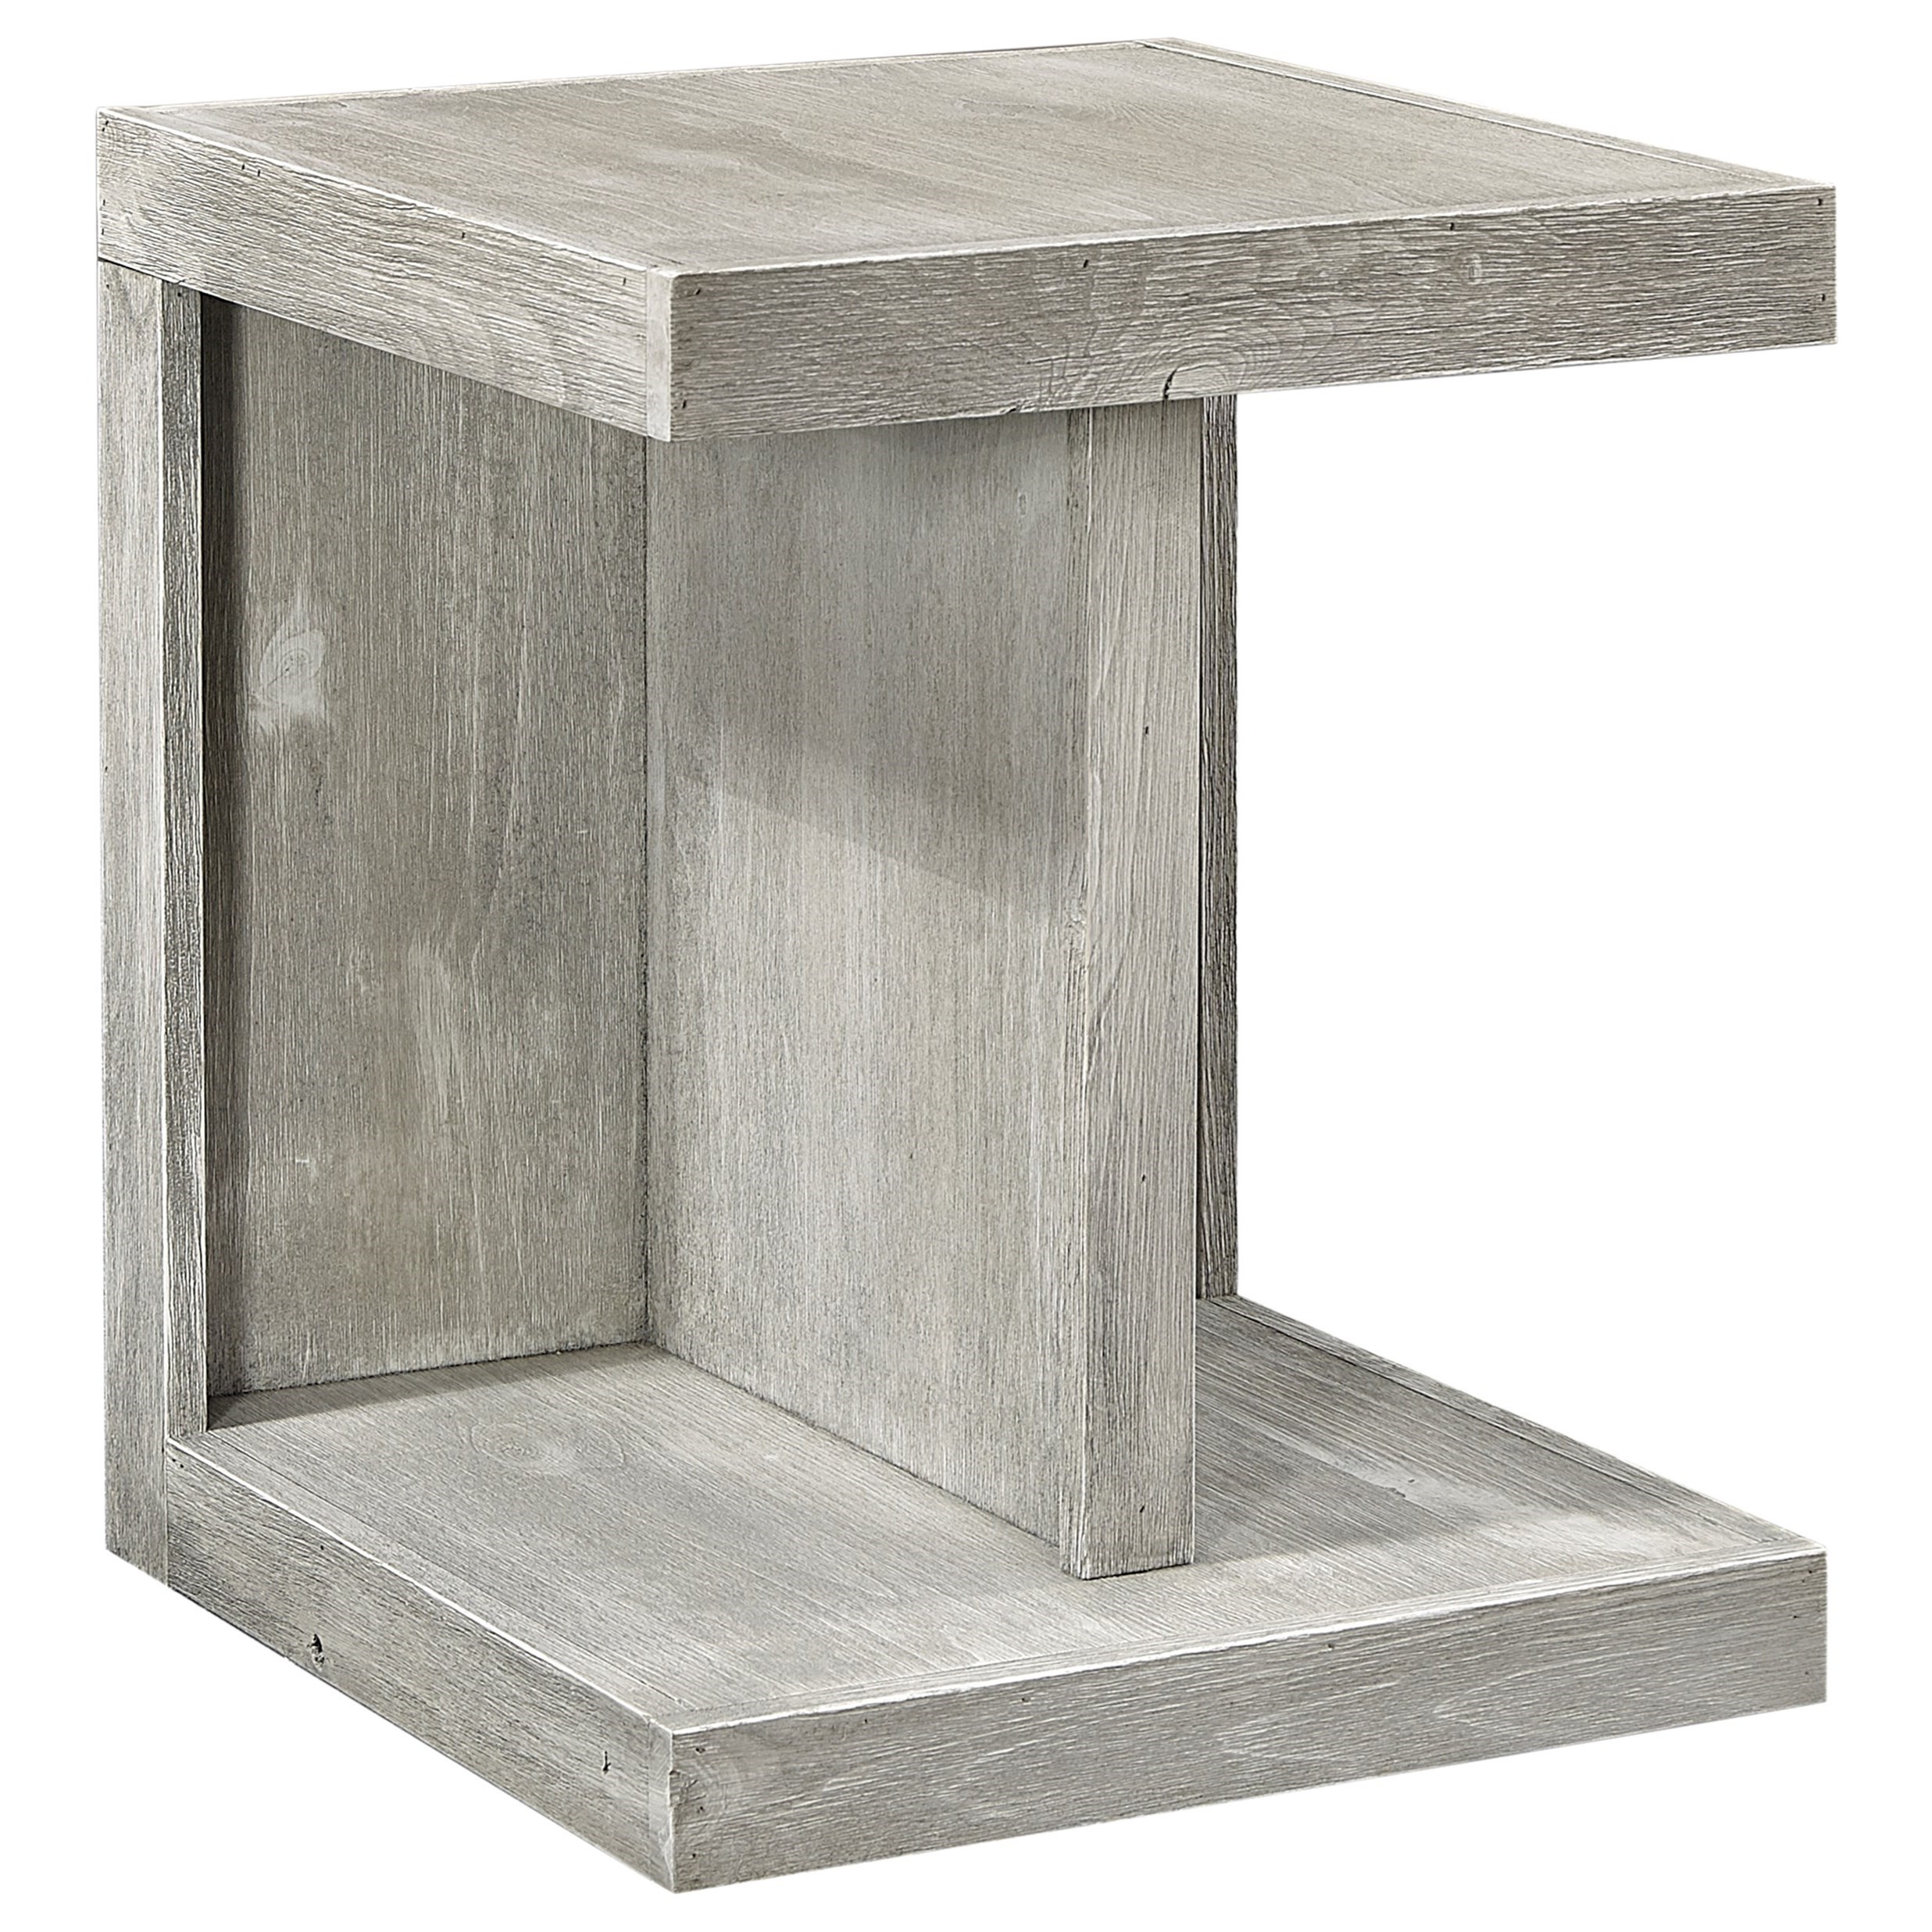 Avery Loft End Table by Aspenhome at HomeWorld Furniture